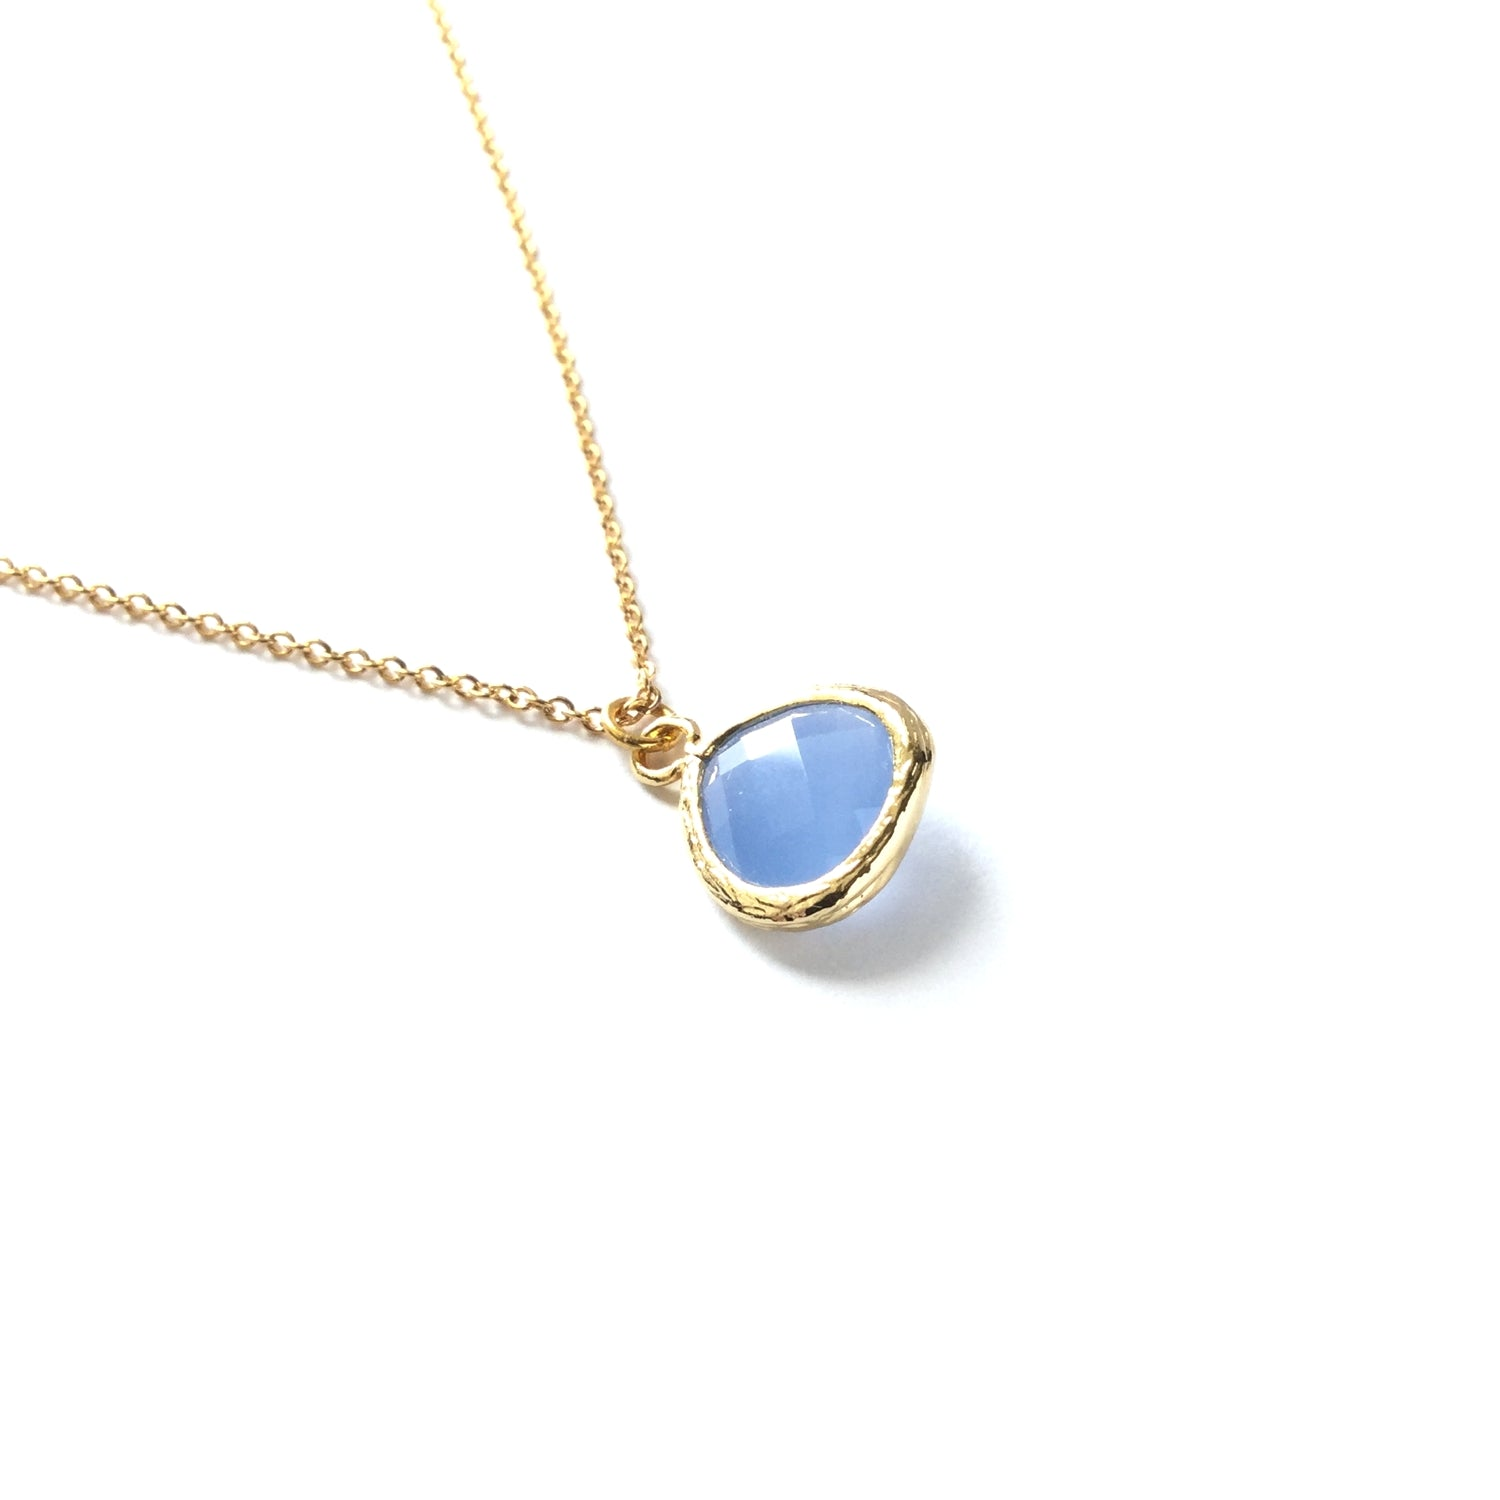 Gold plated framed ice blue faceted glass teardrop pendant on a gold plated chain necklace